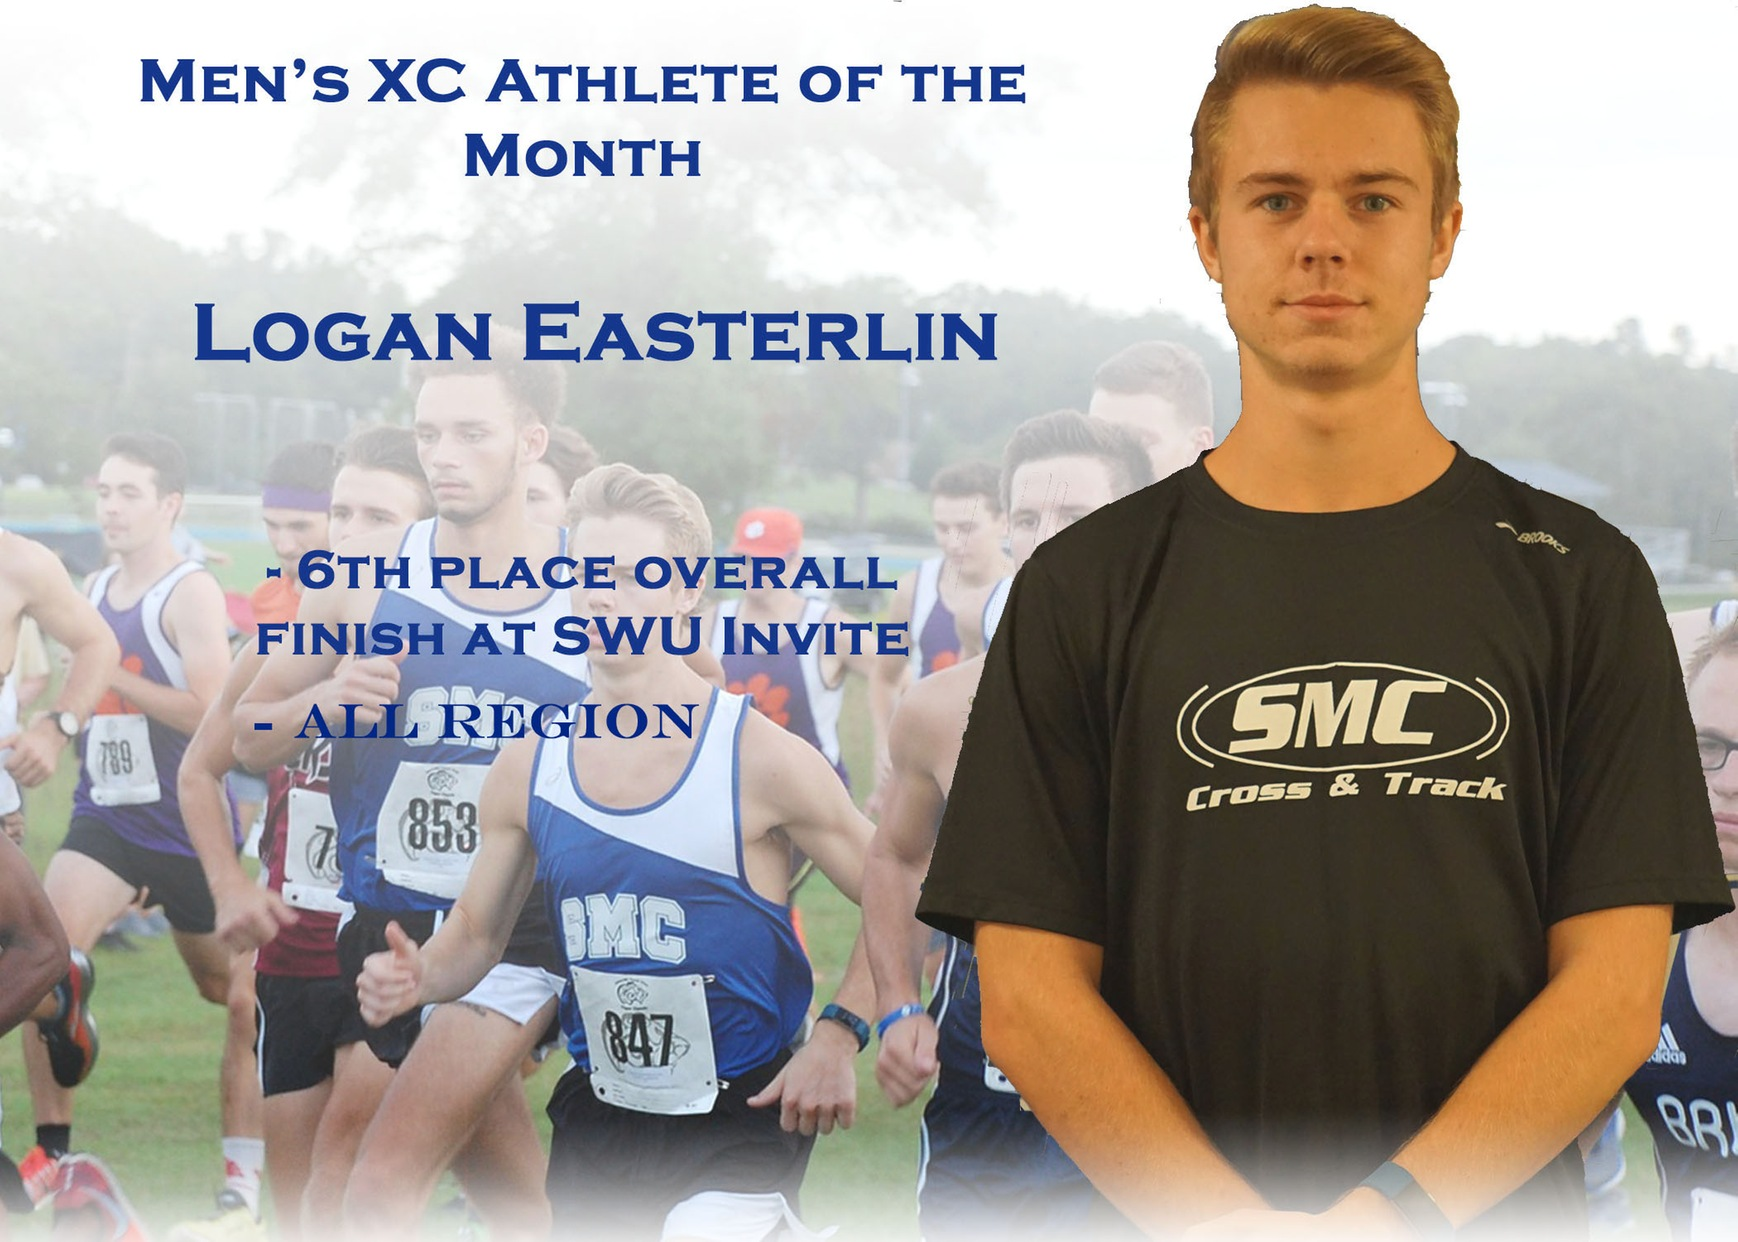 Men's XC Athlete of the Month